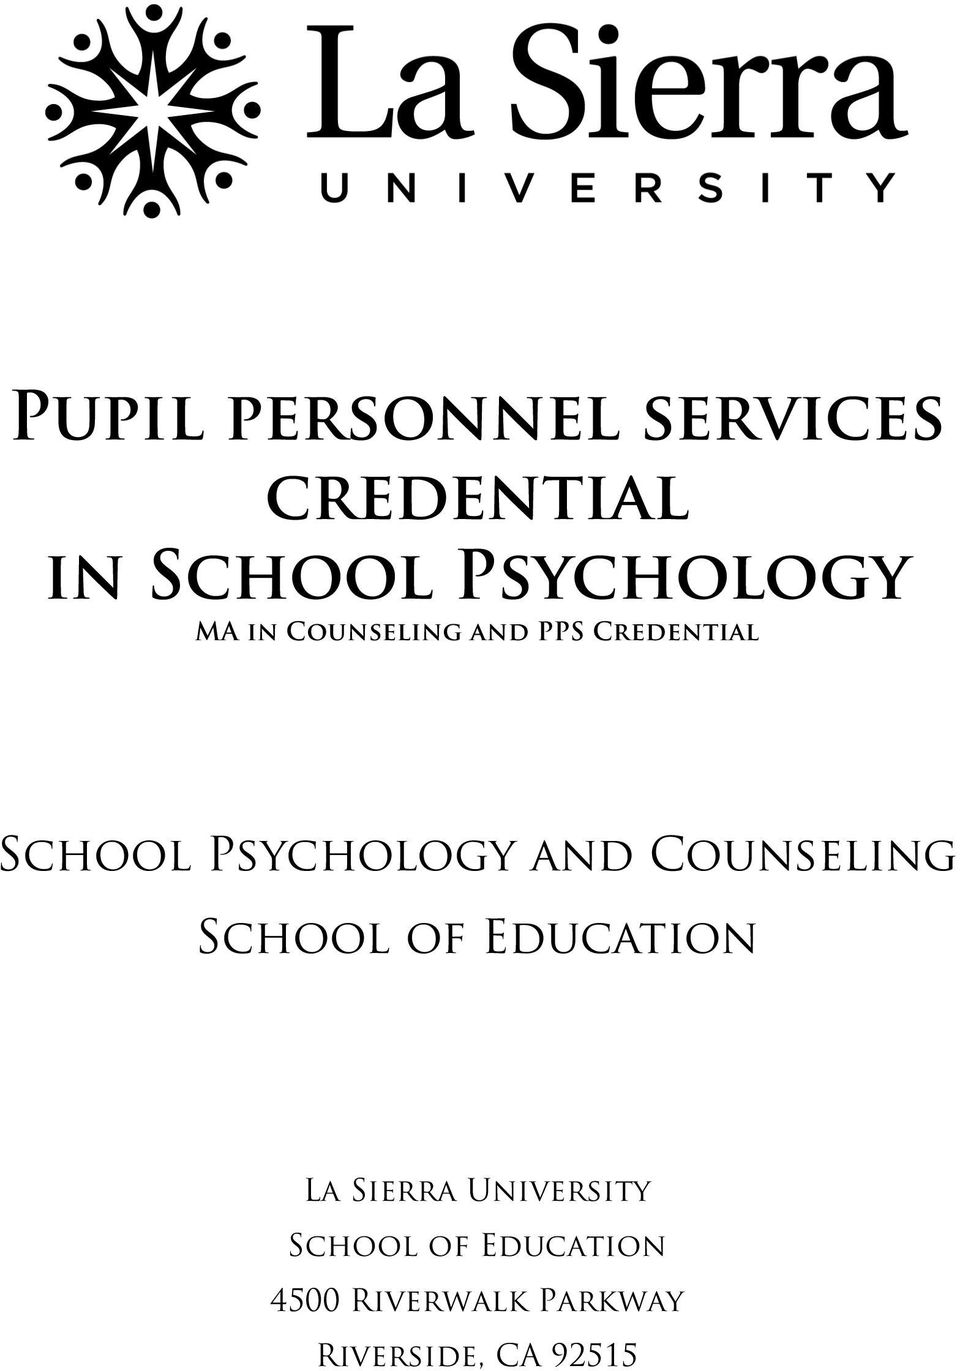 Counseling School of Education La Sierra University